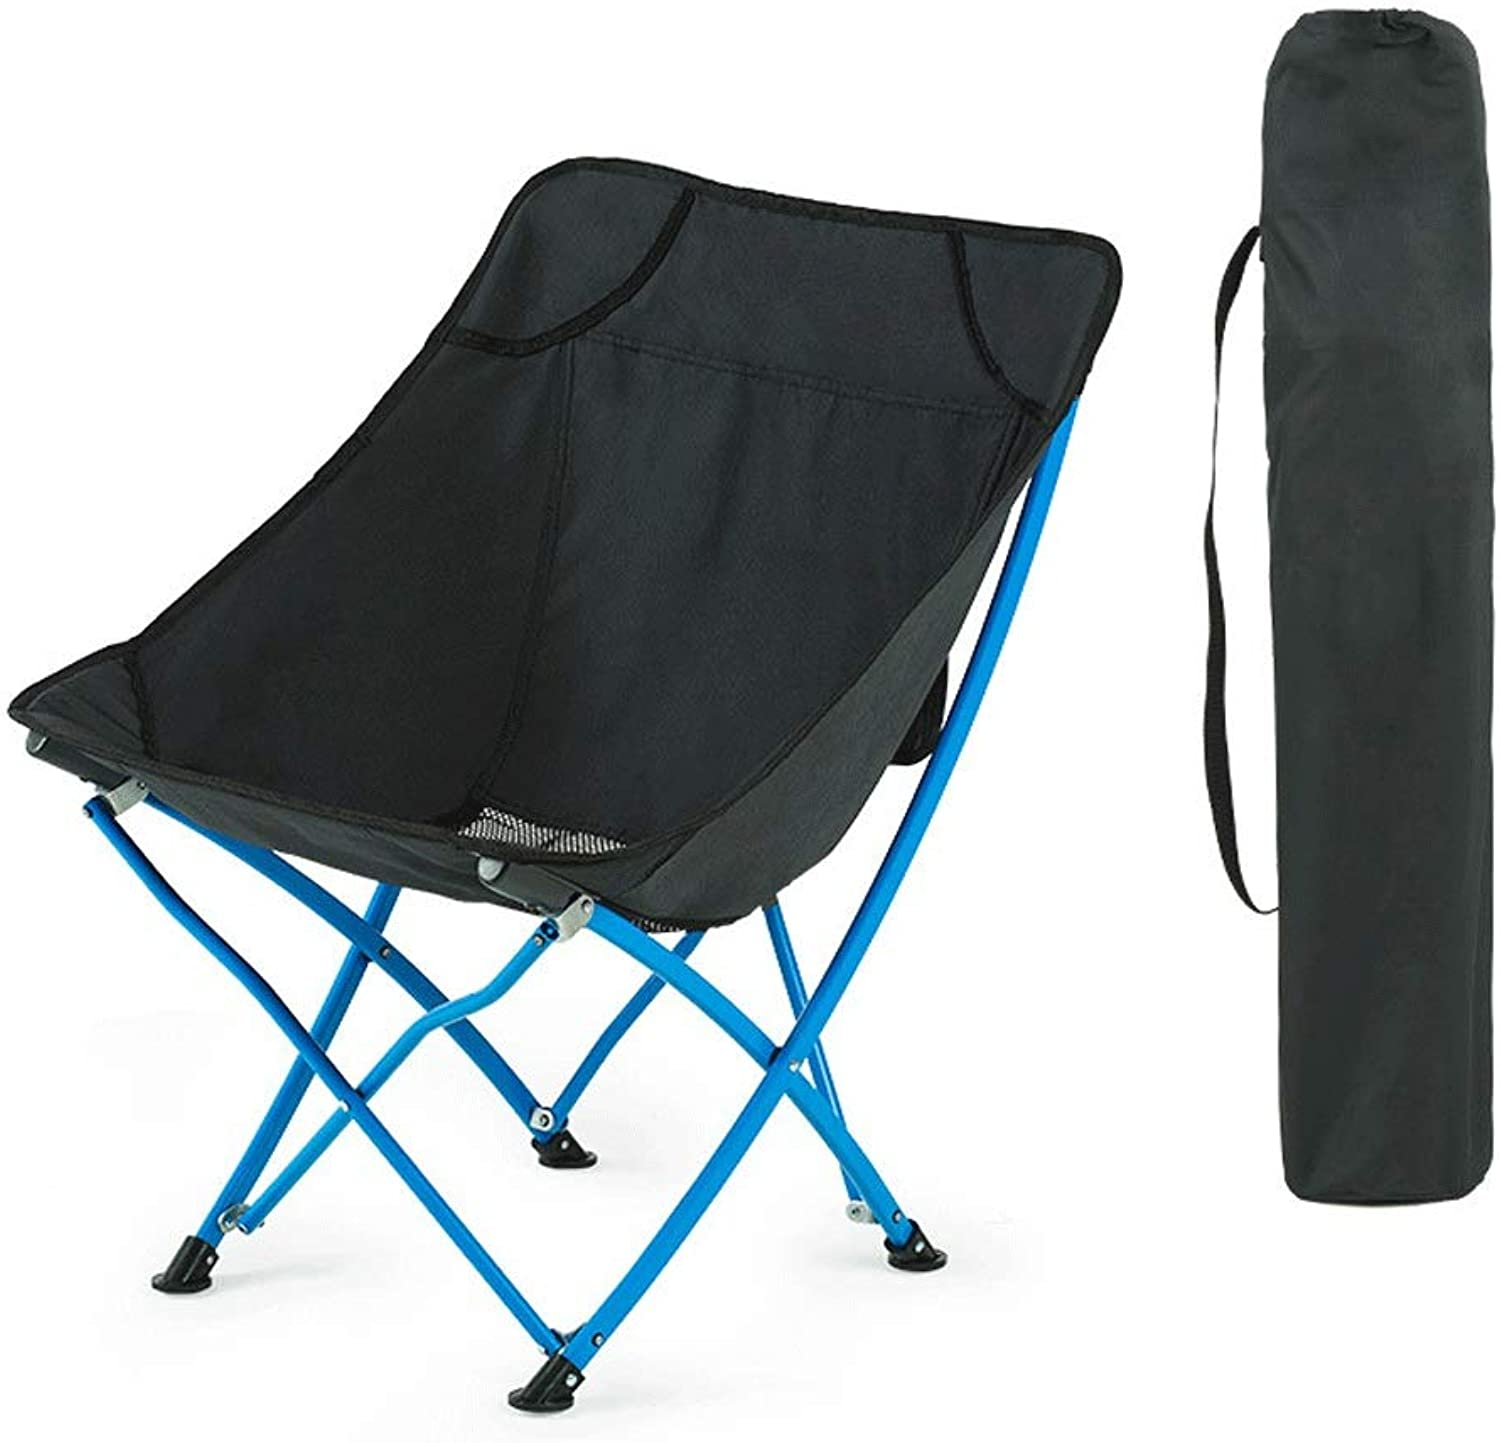 AQnice Outdoor Ultralight Portable Folding Chairs with Carry Bag Heavy Duty 120Kg Capacity Camping Folding Chairs Beach Chairs (color   Black)